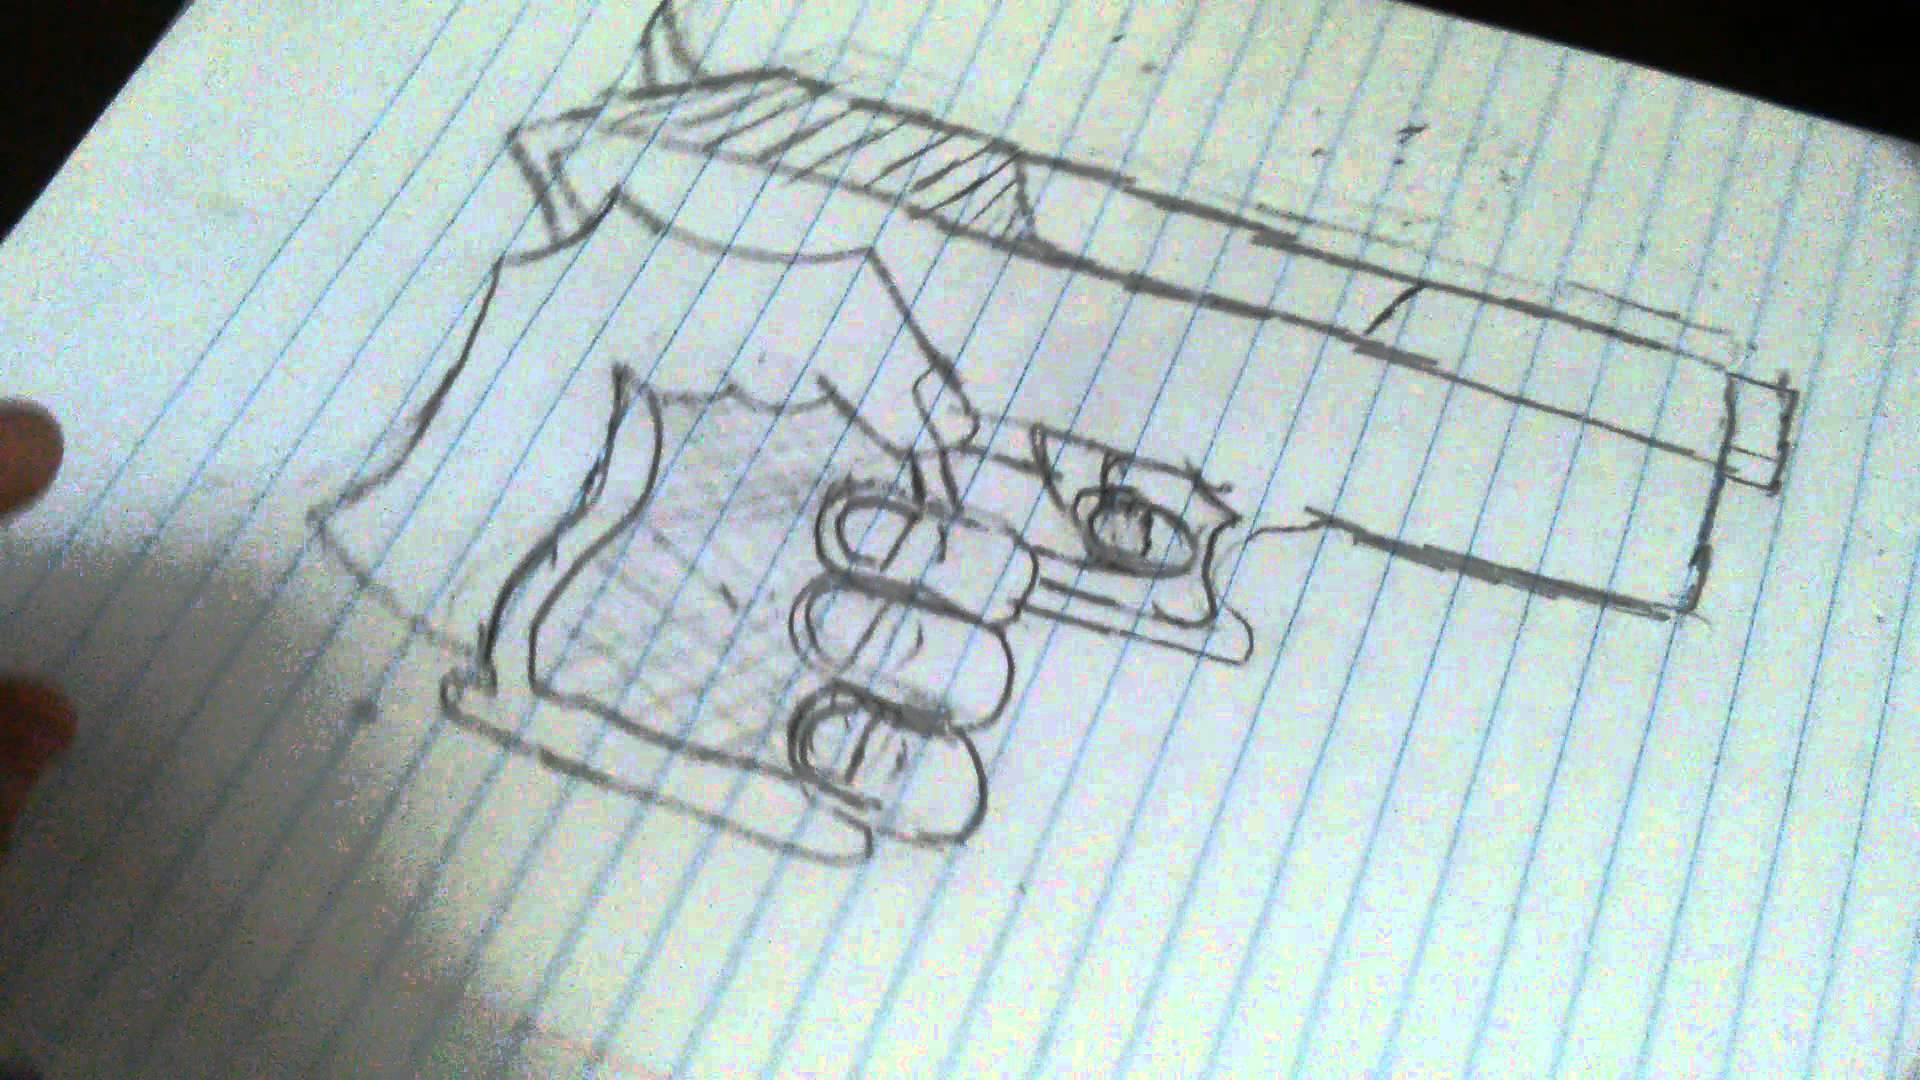 Drawn pistol hand holding From and YouTube 2 How